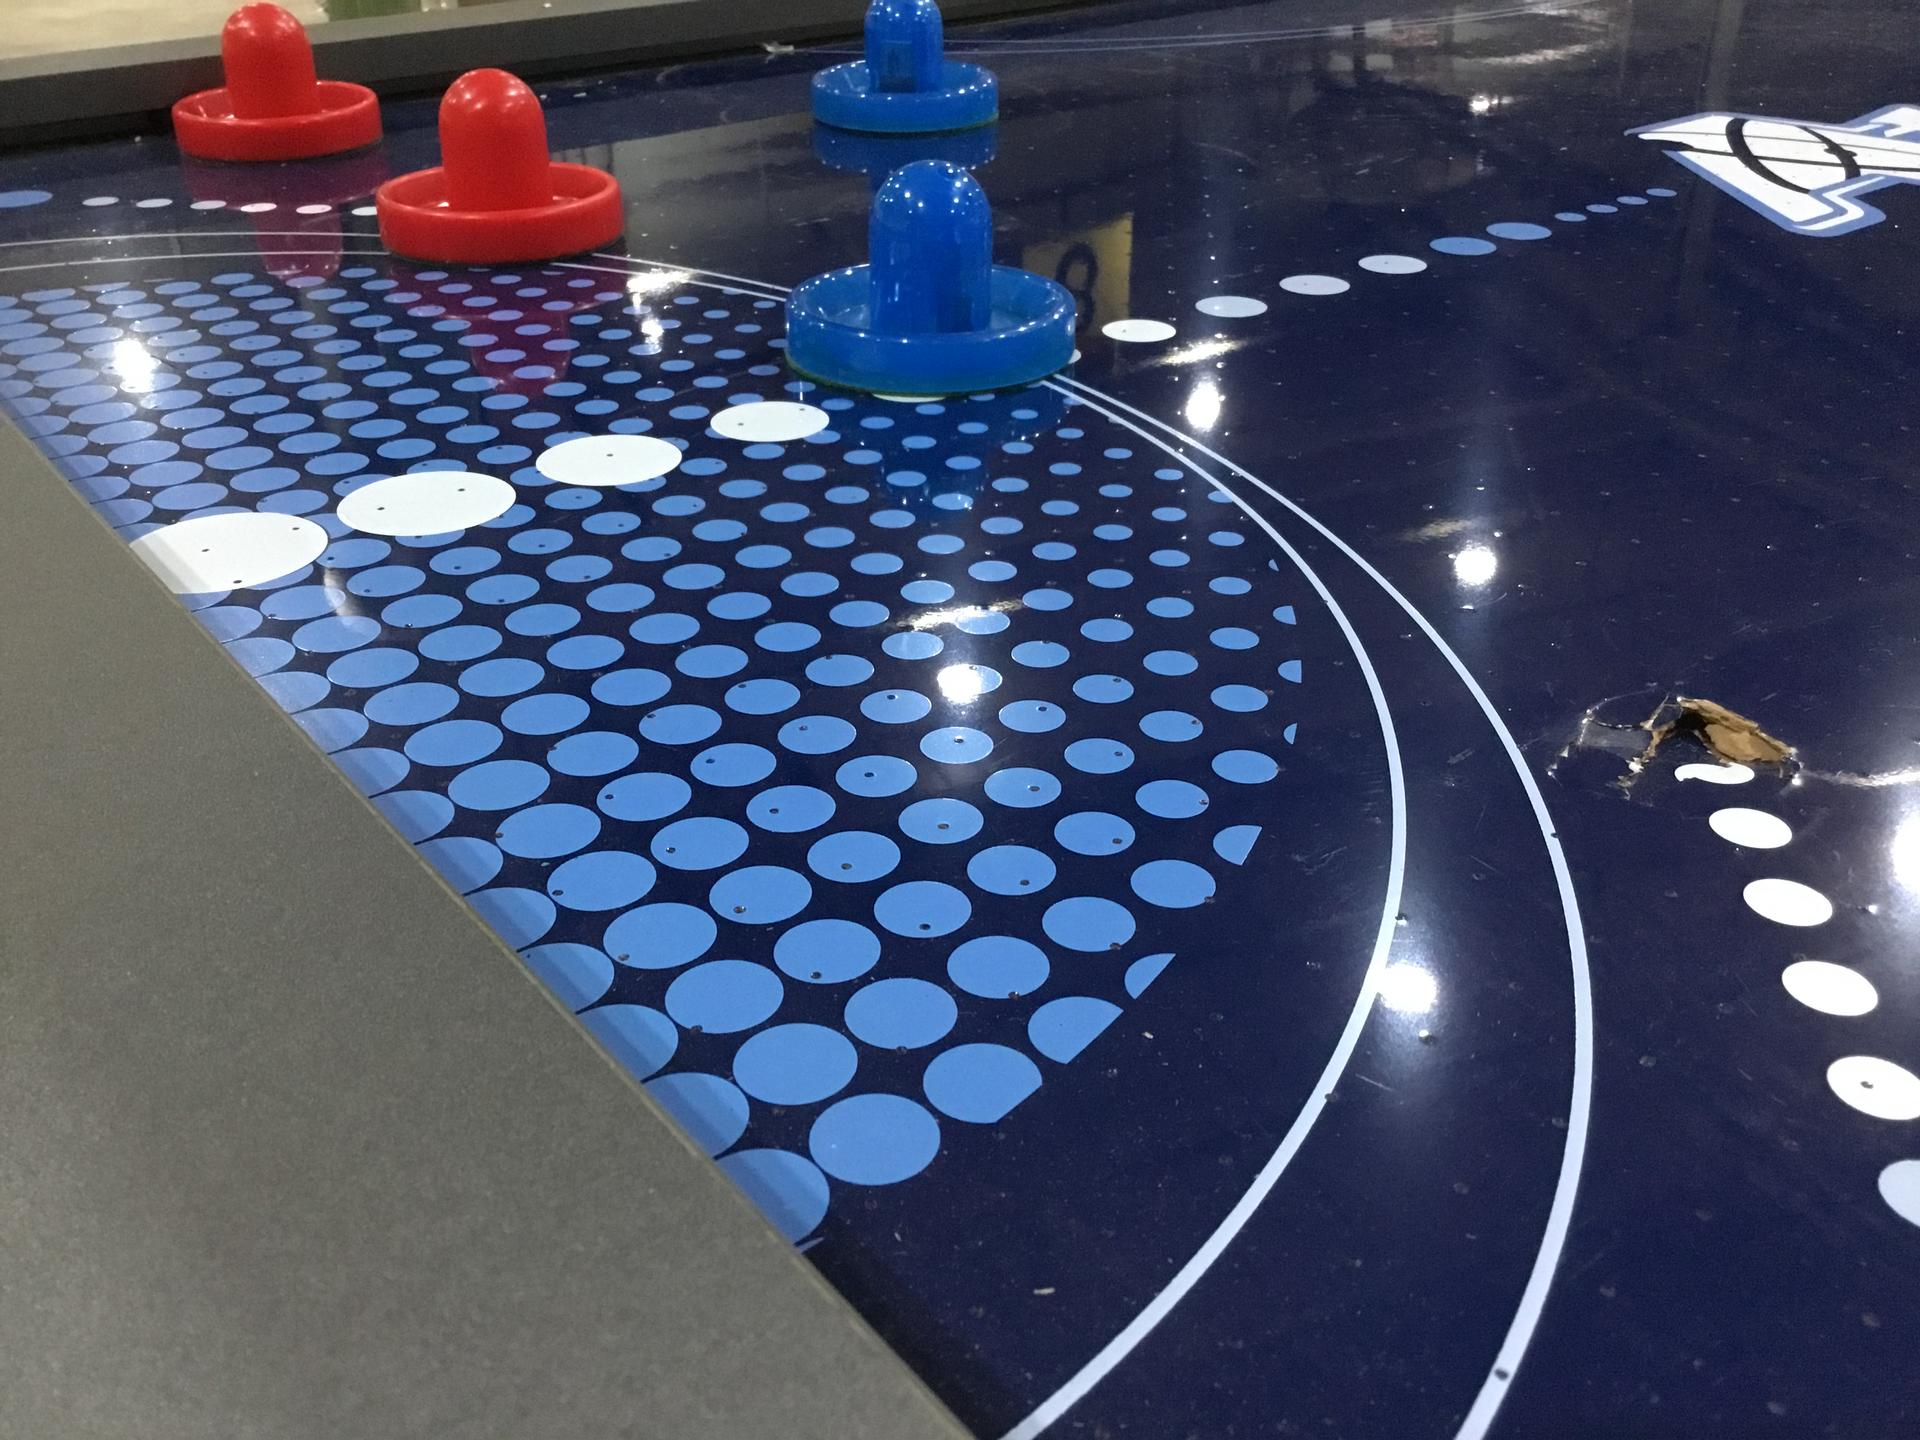 Atomic 90 or 7.5 ft LED Light UP Arcade Air Powered Hockey Tables - Includes Light UP Pucks and Pushers